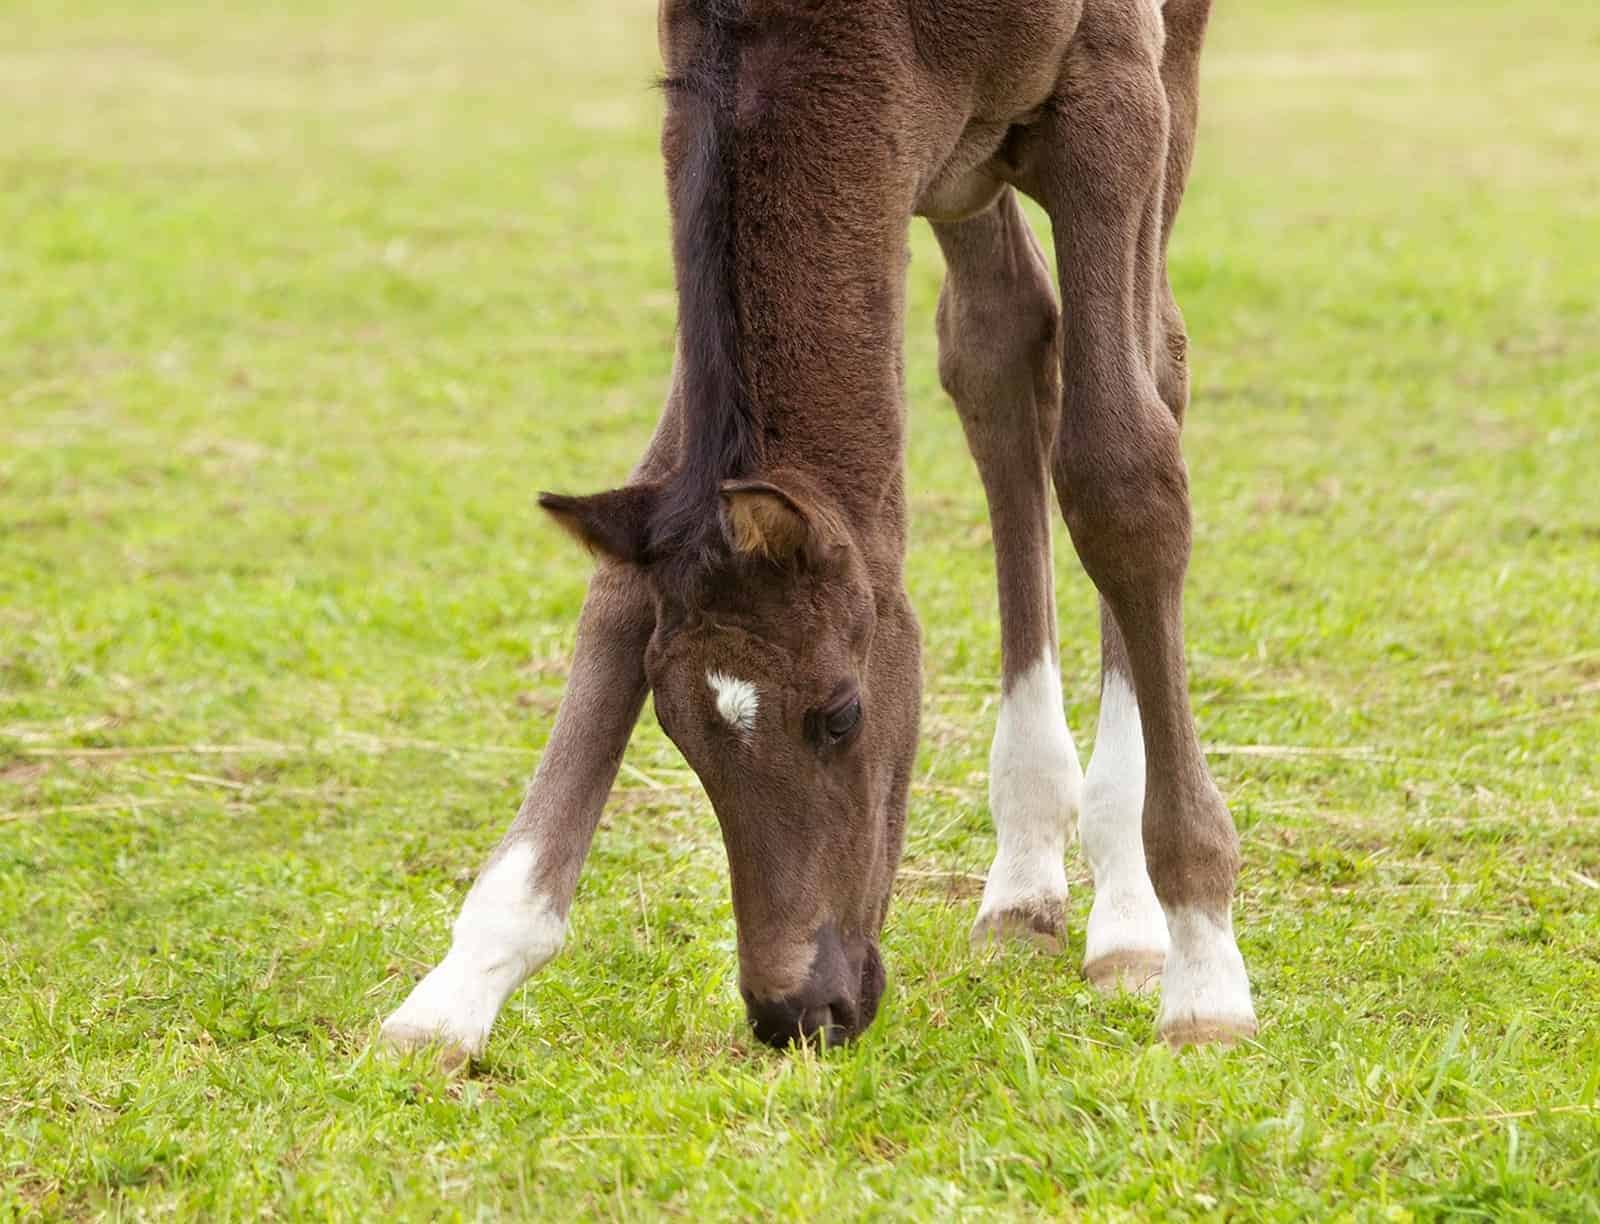 Hoof Development: From Fetus to Maturity – The Horse